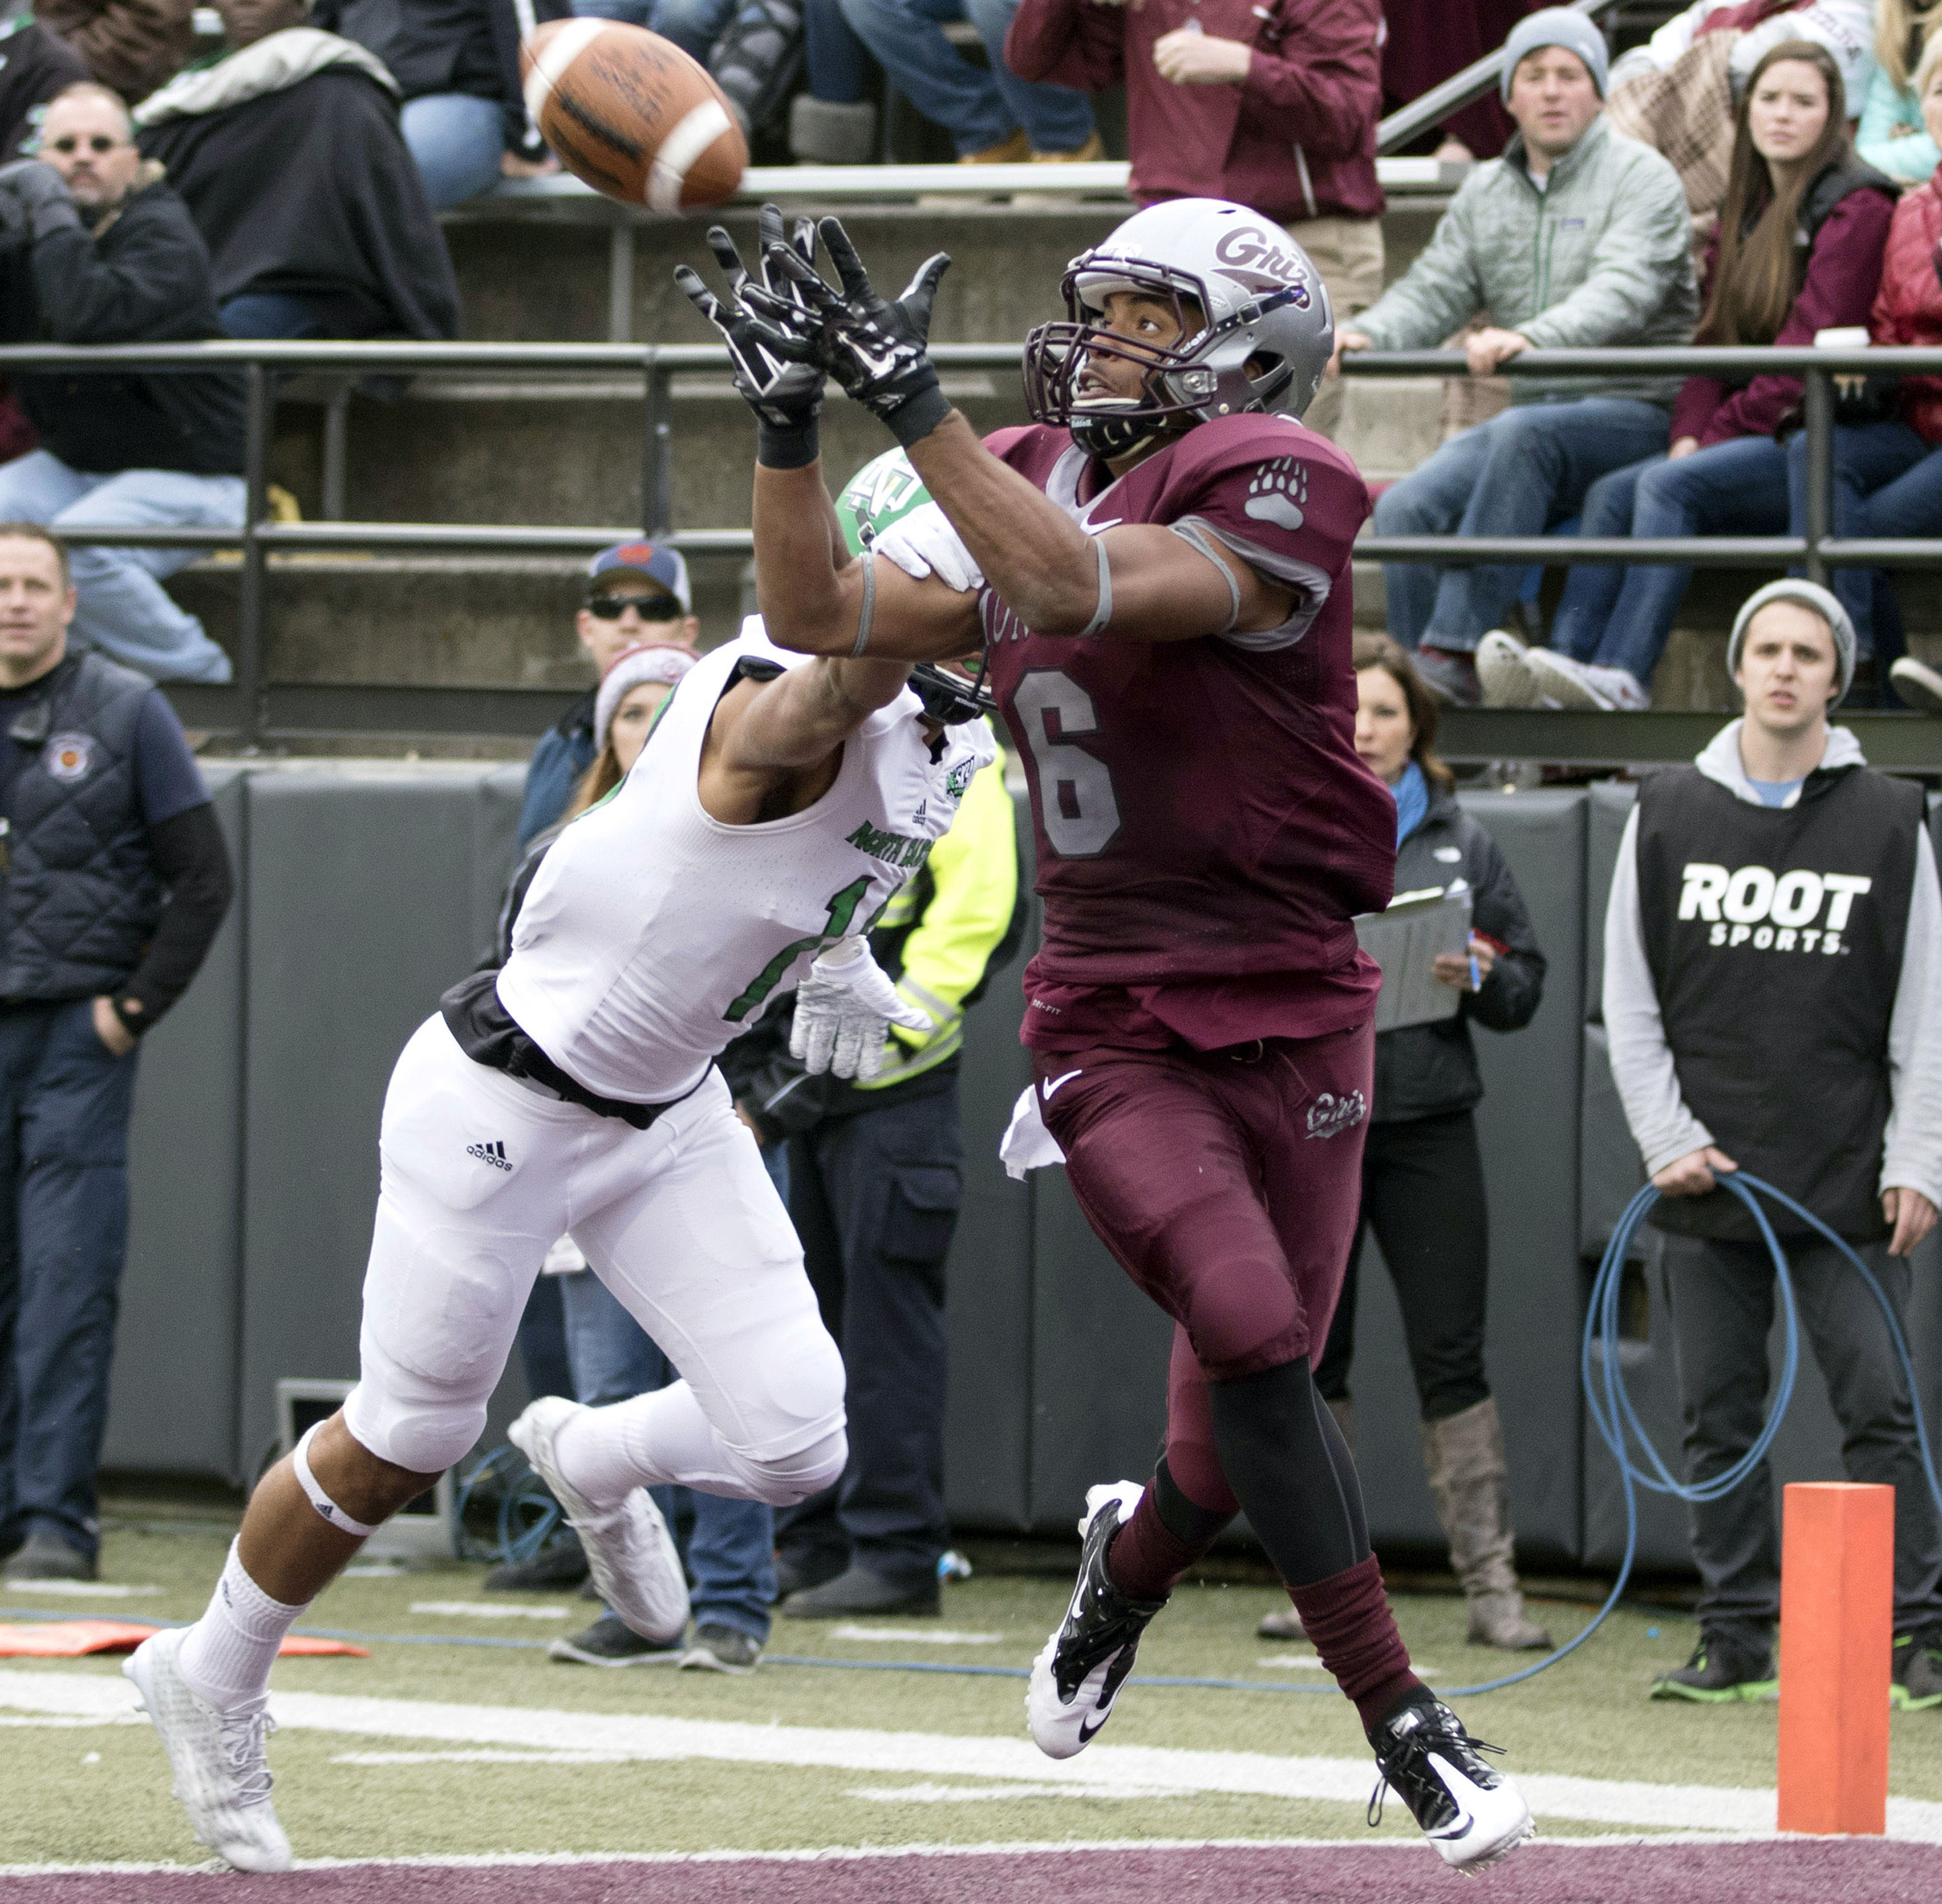 FILE - In this Oct. 24, 2015, file photo, Montana wide receiver Jamaal Jones (6) catches a touchdown pass against North Dakota during an NCAA college football game in Missoula, Mont. South Dakota State plays Montana on Saturday, Nov. 28. (AP Photo/Patrick